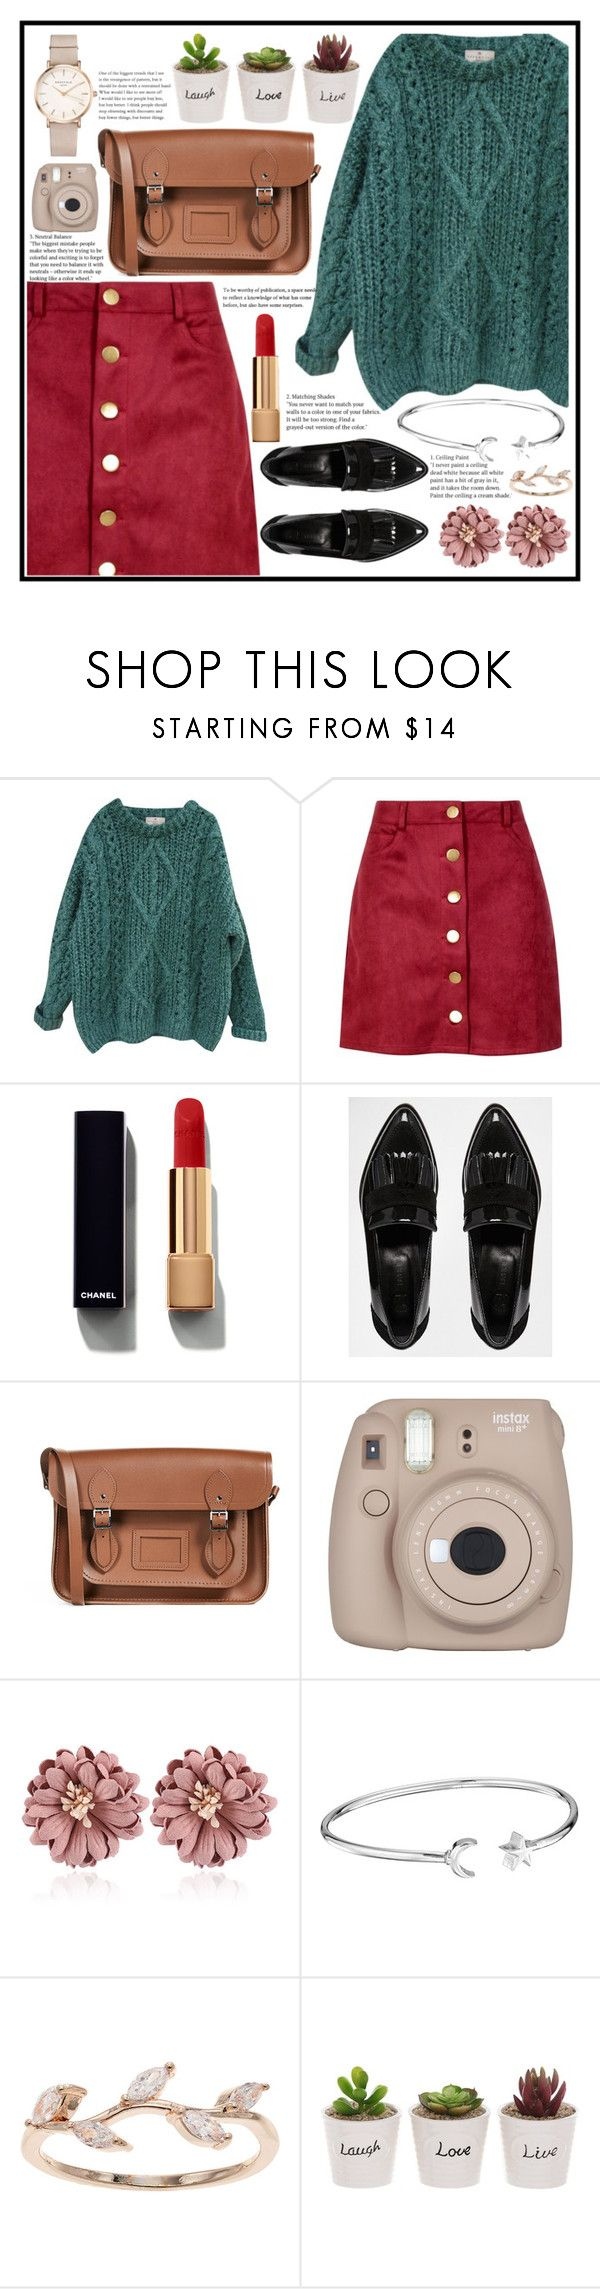 """""""Cutesy artist"""" by rmarie2001 ❤ liked on Polyvore featuring Essentiel, Boohoo, Chanel, River Island, The Cambridge Satchel Company, Fujifilm, Alex and Ani, LC Lauren Conrad and ROSEFIELD"""